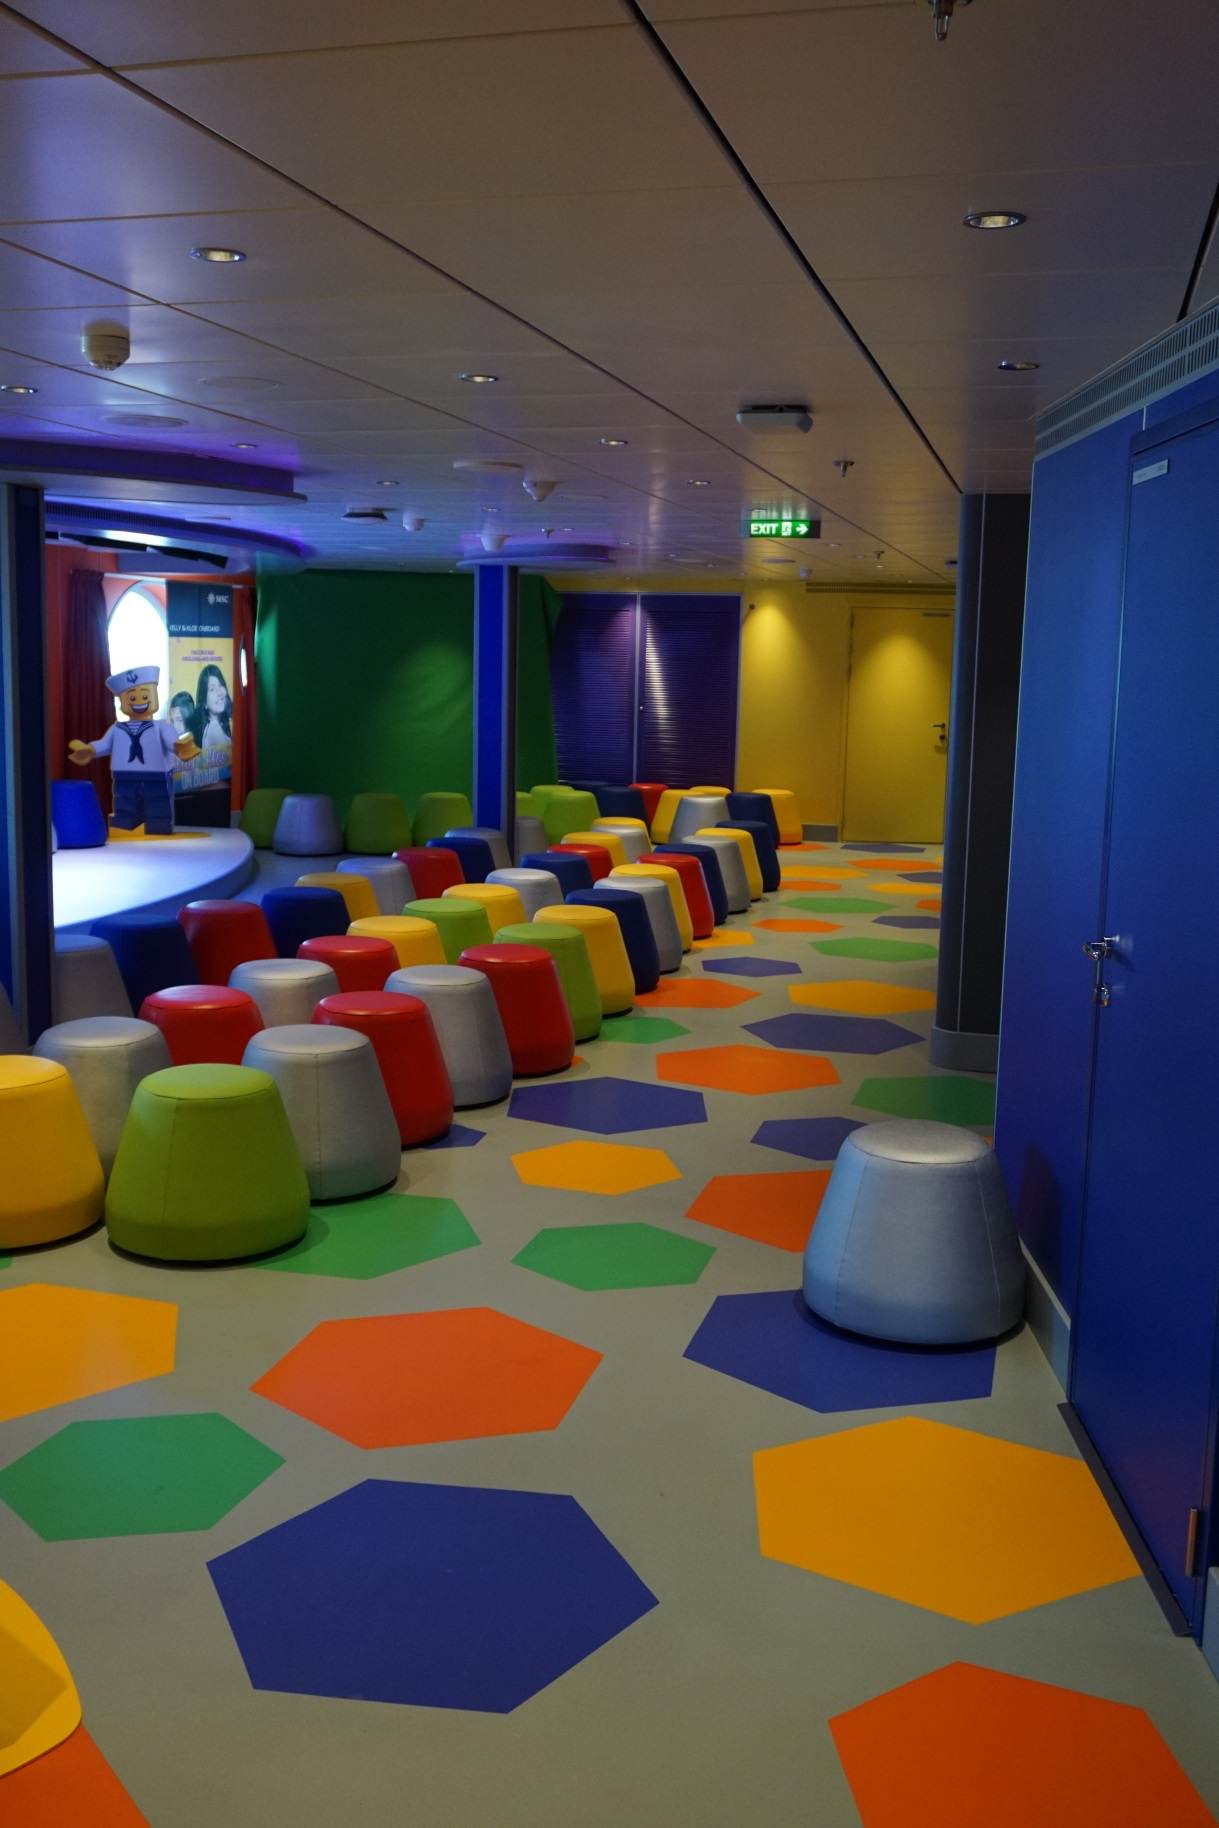 Doremi theatre MSC Seaside 7 kids area resin flooring